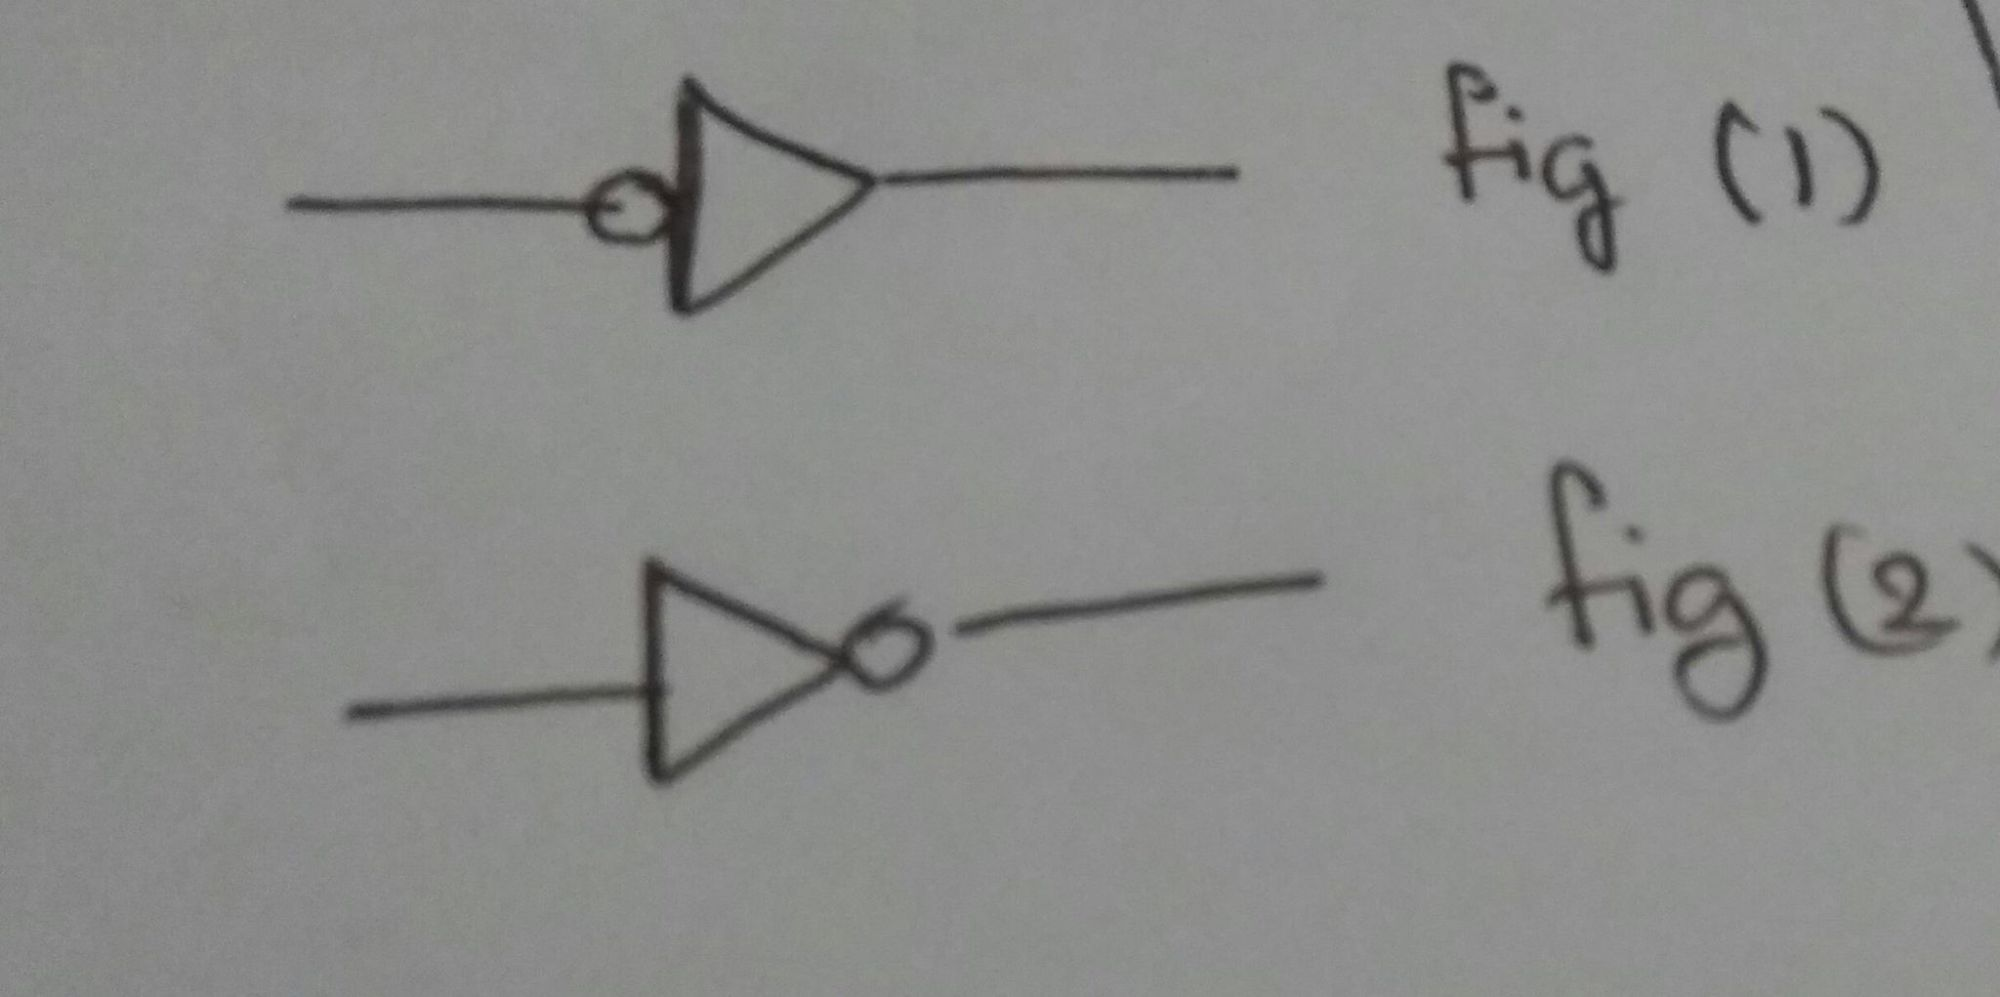 hight resolution of  this two inverter symbols enter image description here